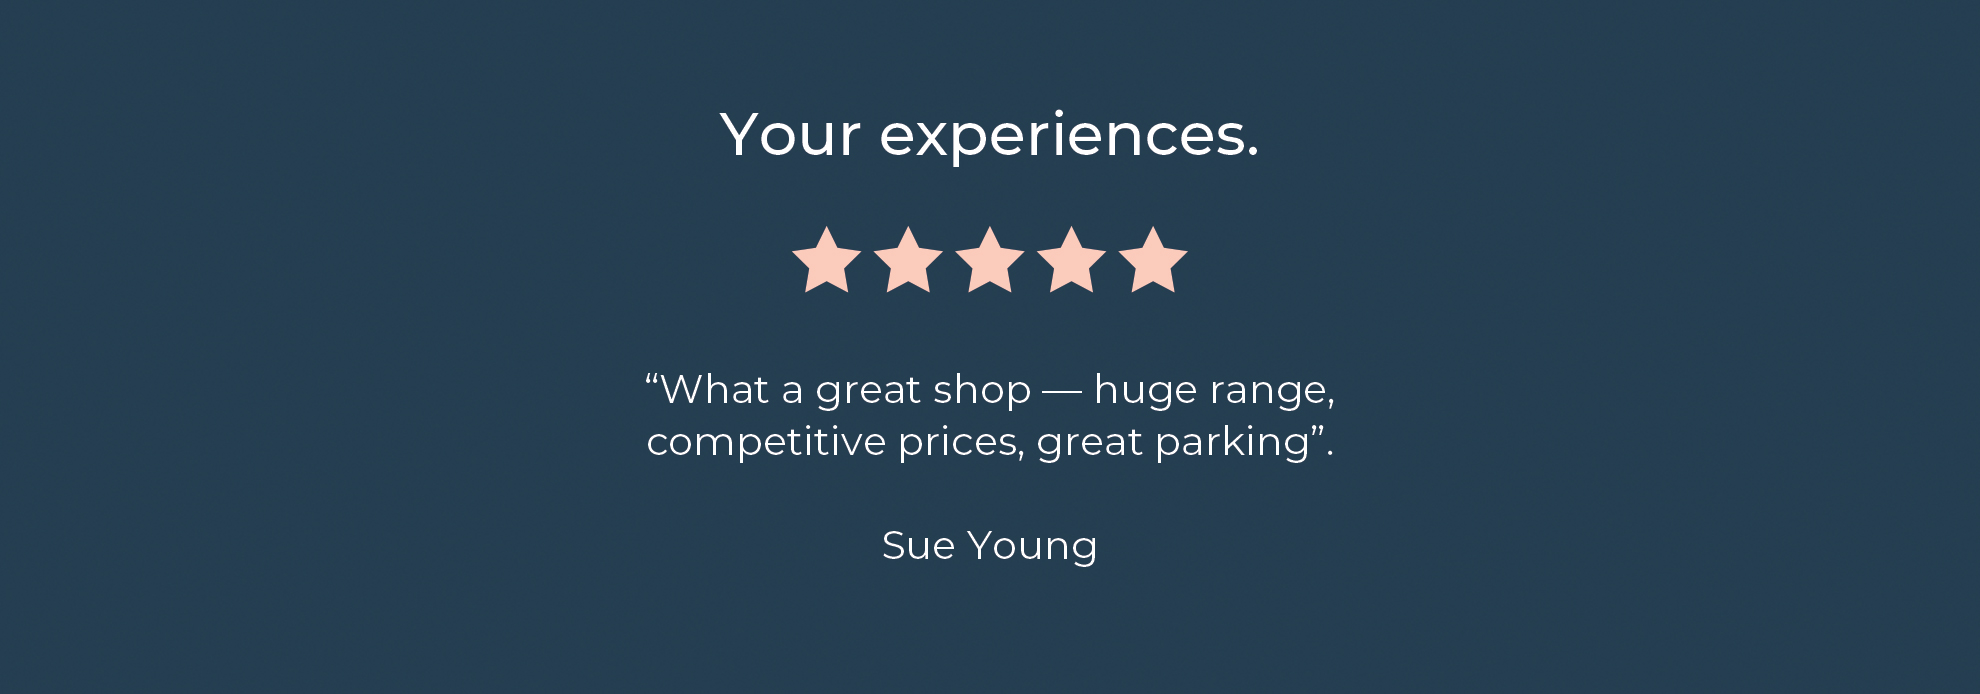 Your-experiences-customer-review-3